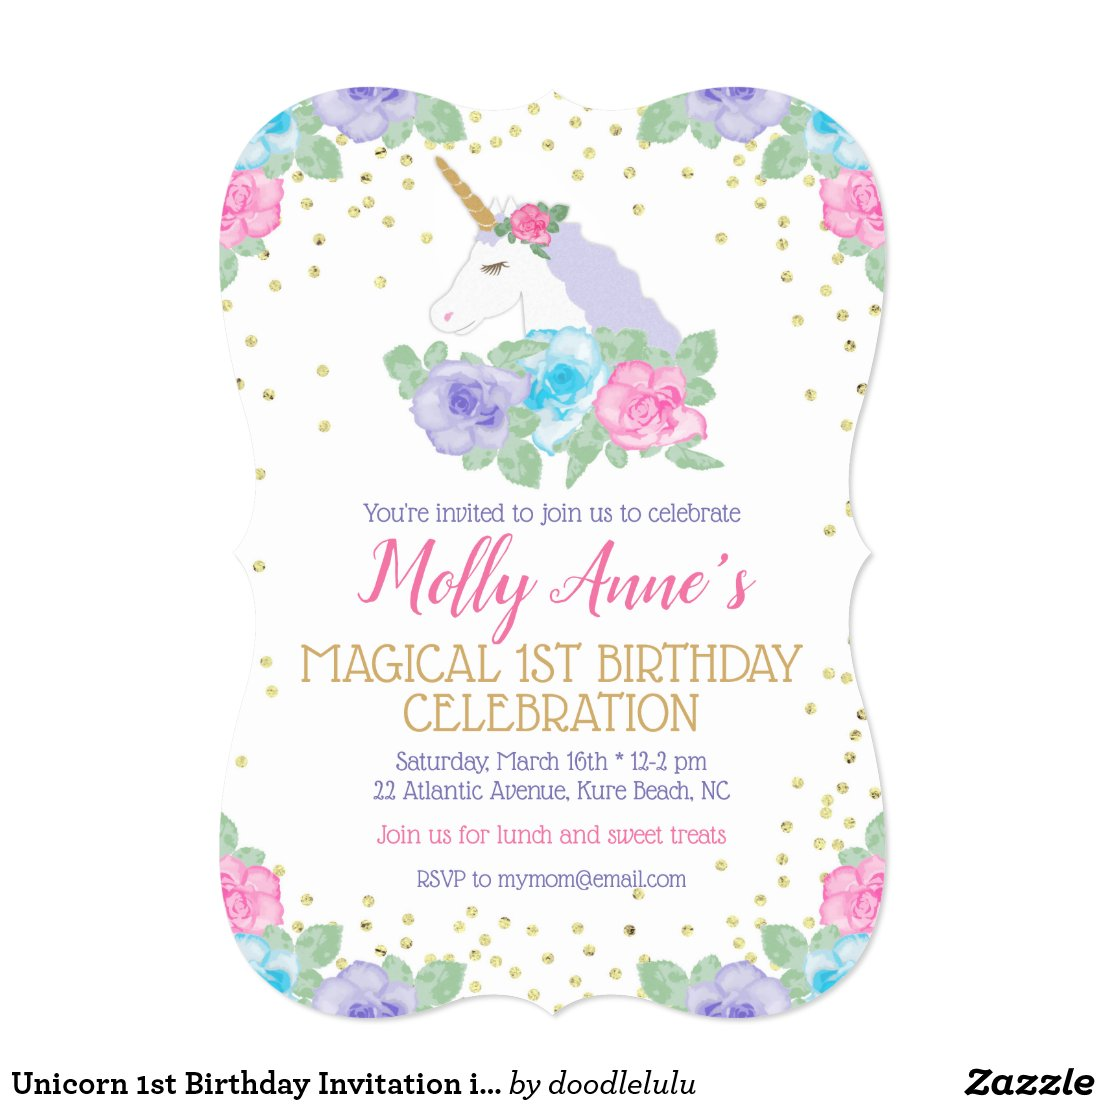 Unicorn 1st Birthday Invitation in Pink and Gold